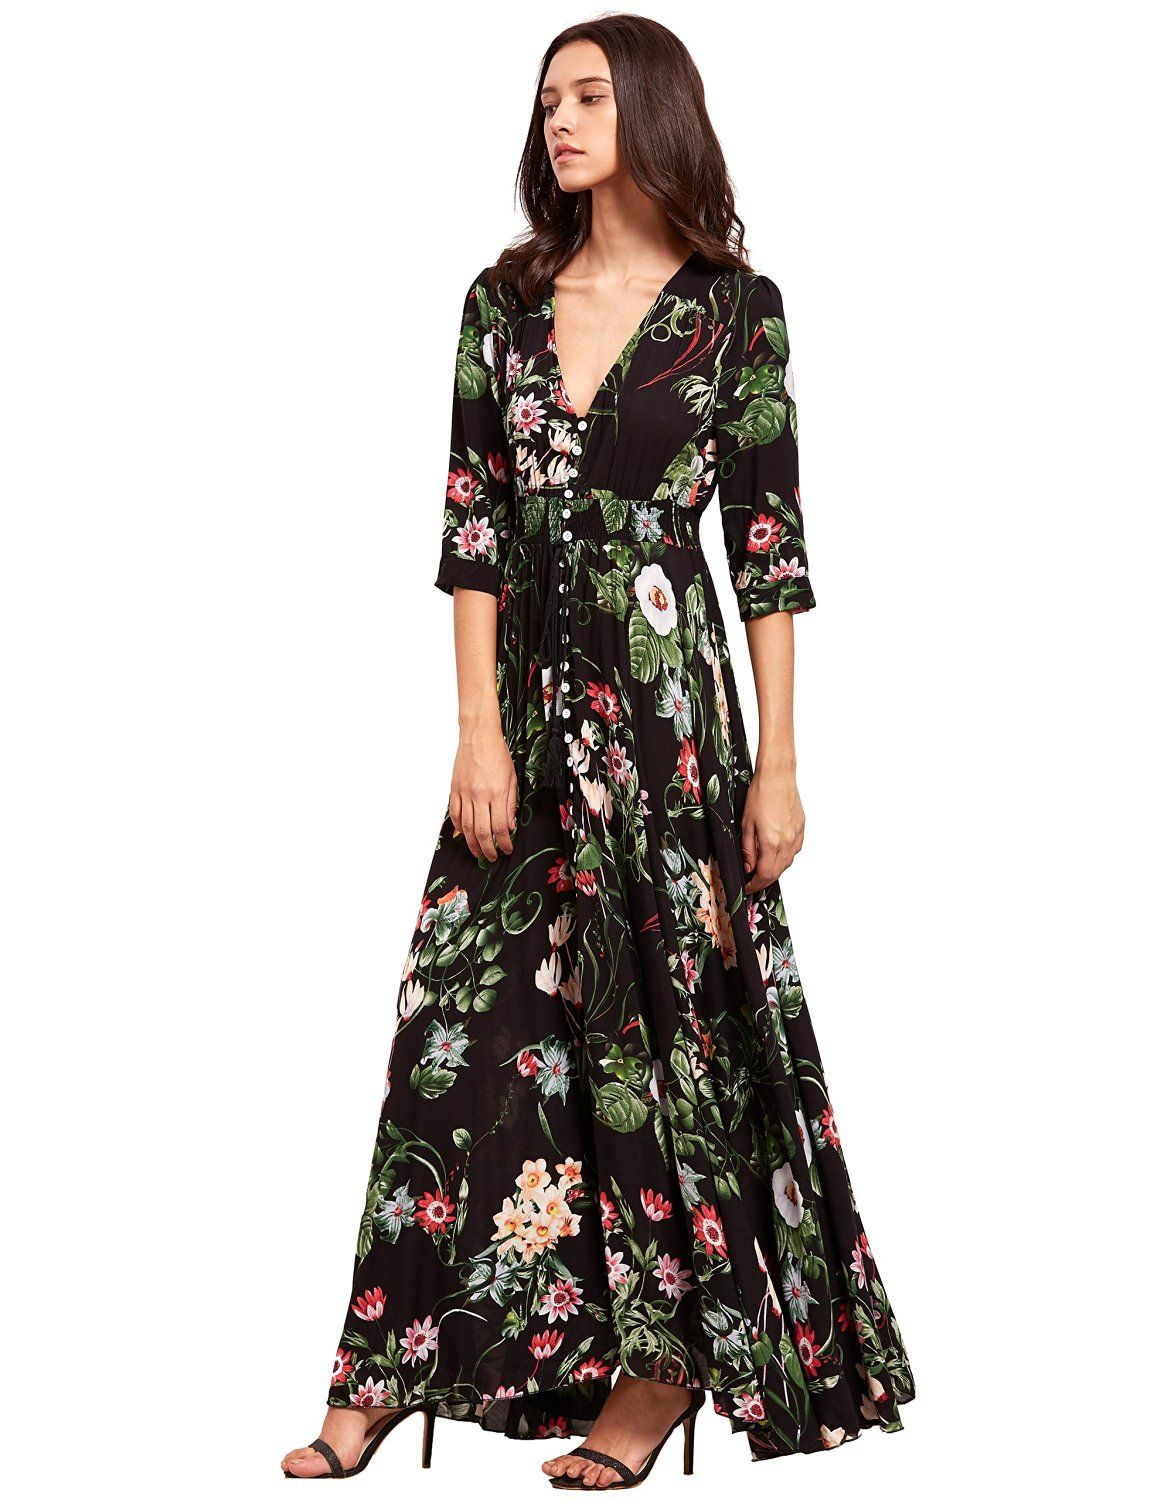 82748198c53cc Milumia Women s Button Up Split Floral Print Flowy Party Maxi Dress at  Amazon Women s Clothing store